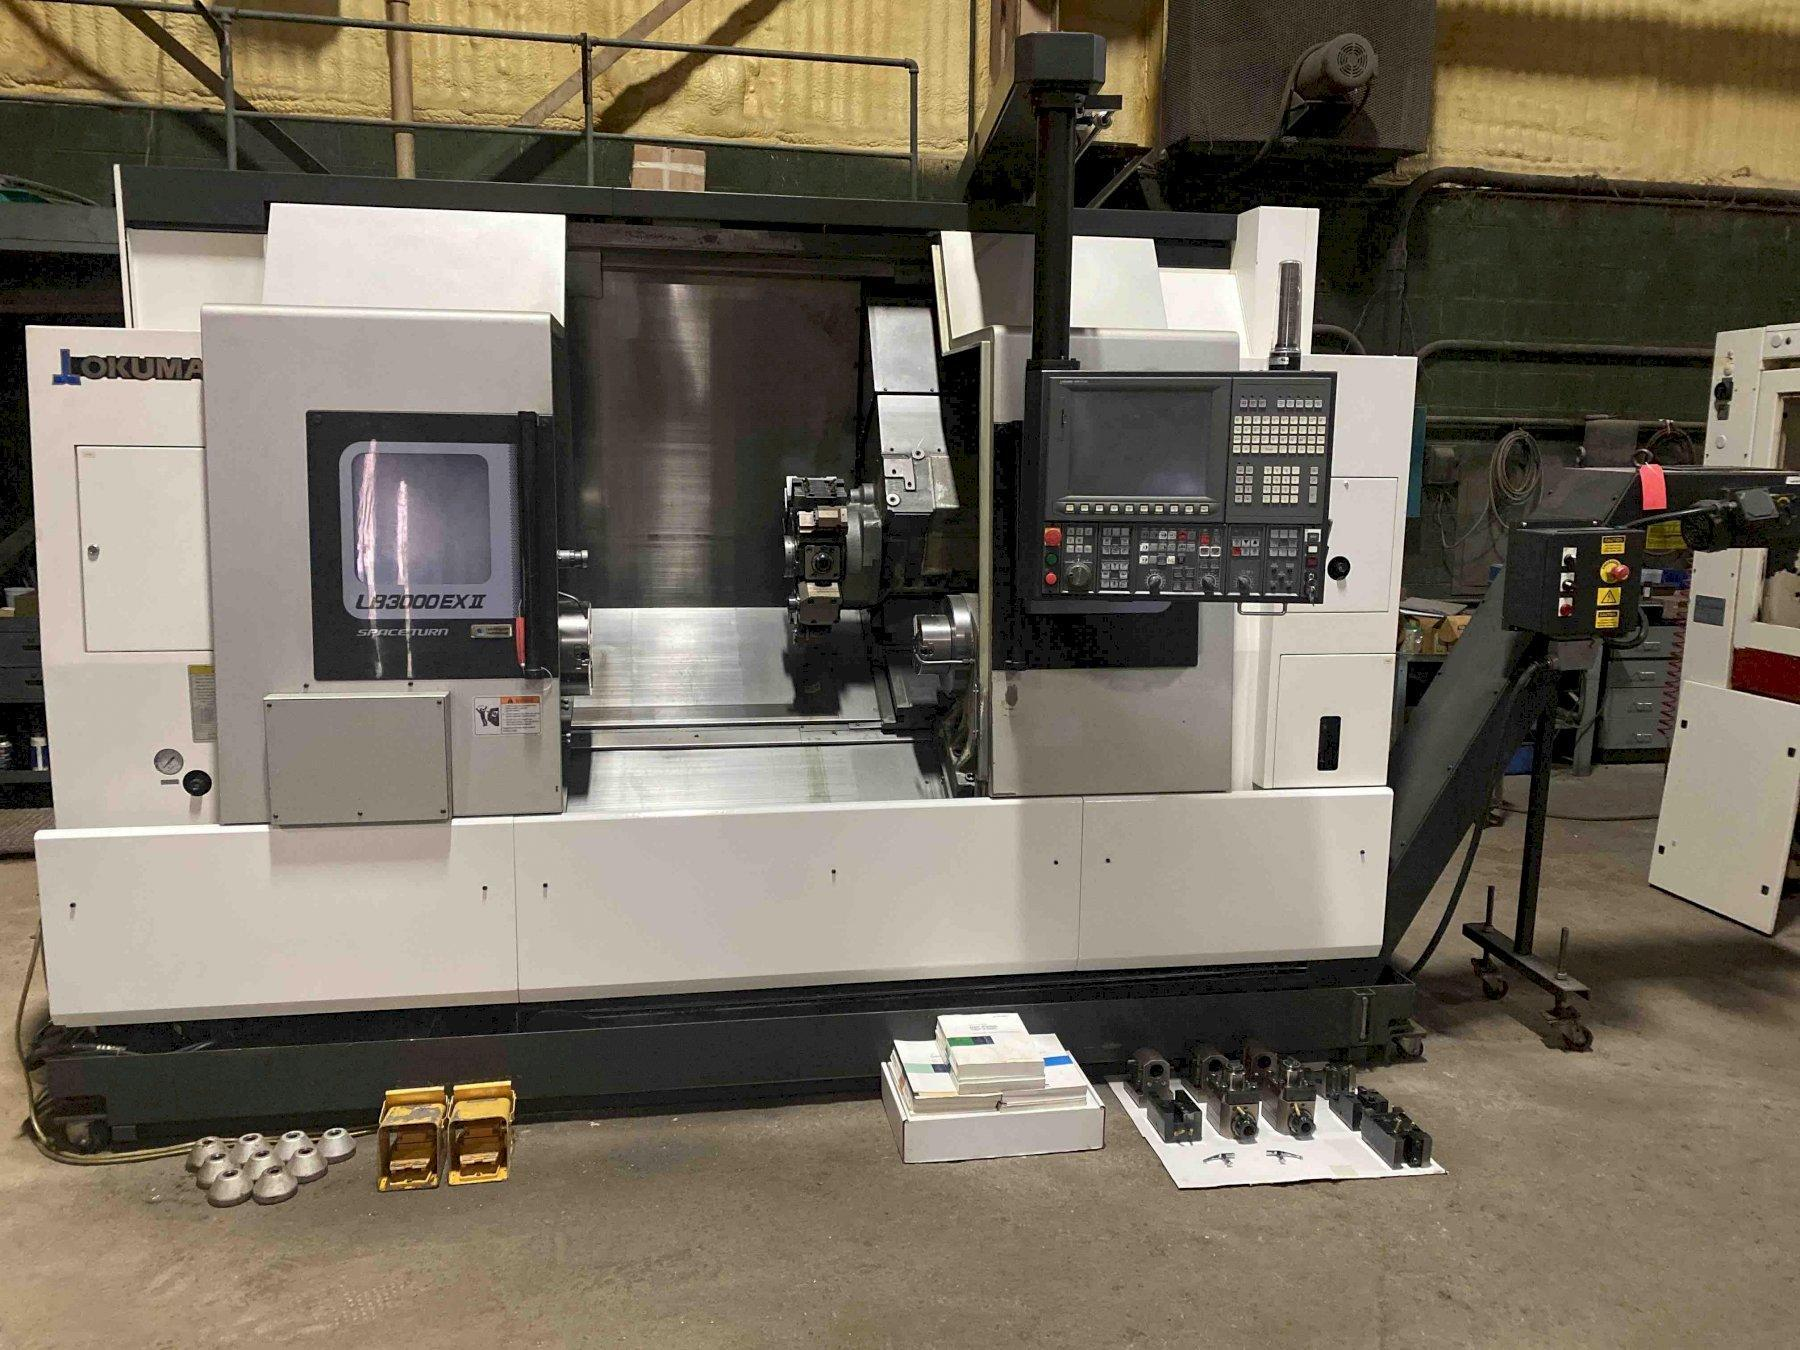 "Okuma LB3000EXII-MYW 6-Axis CNC Lathe (2014) , OSP300L, 10""/6"" Chucks, 32"" Centers, 3.58"" Bore, 3.25 Bar Capacity, 12 Position Turret, 30 HP, Live Holders, Static ID/OD Holders, Chip Conveyor, Low Hours (2014)"